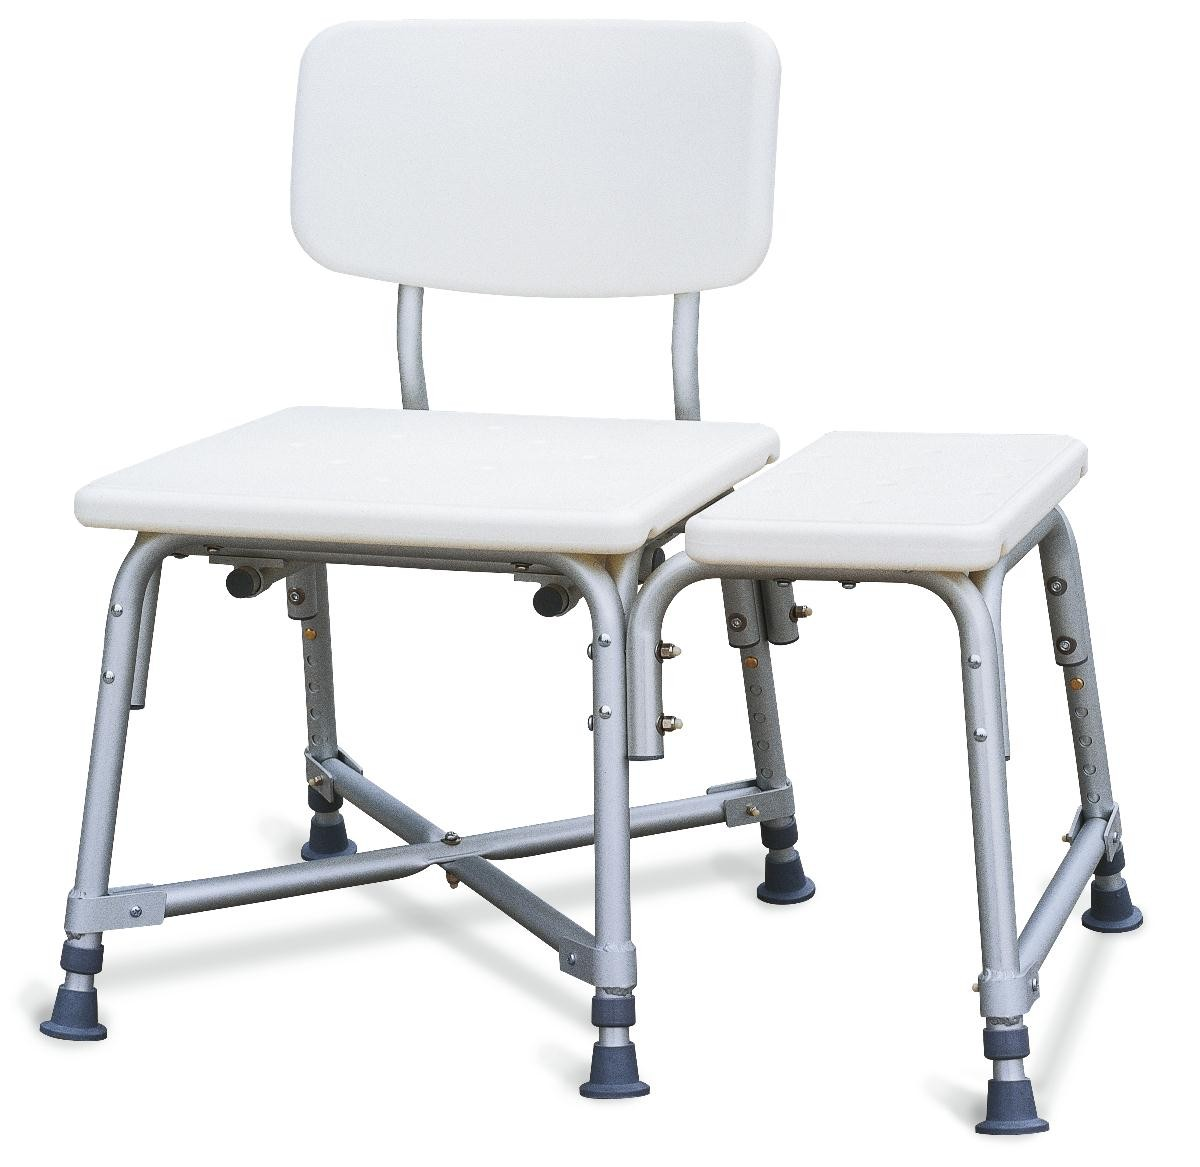 Medline Non-Padded Bariatric Transfer Bench - Benches and Stools ...